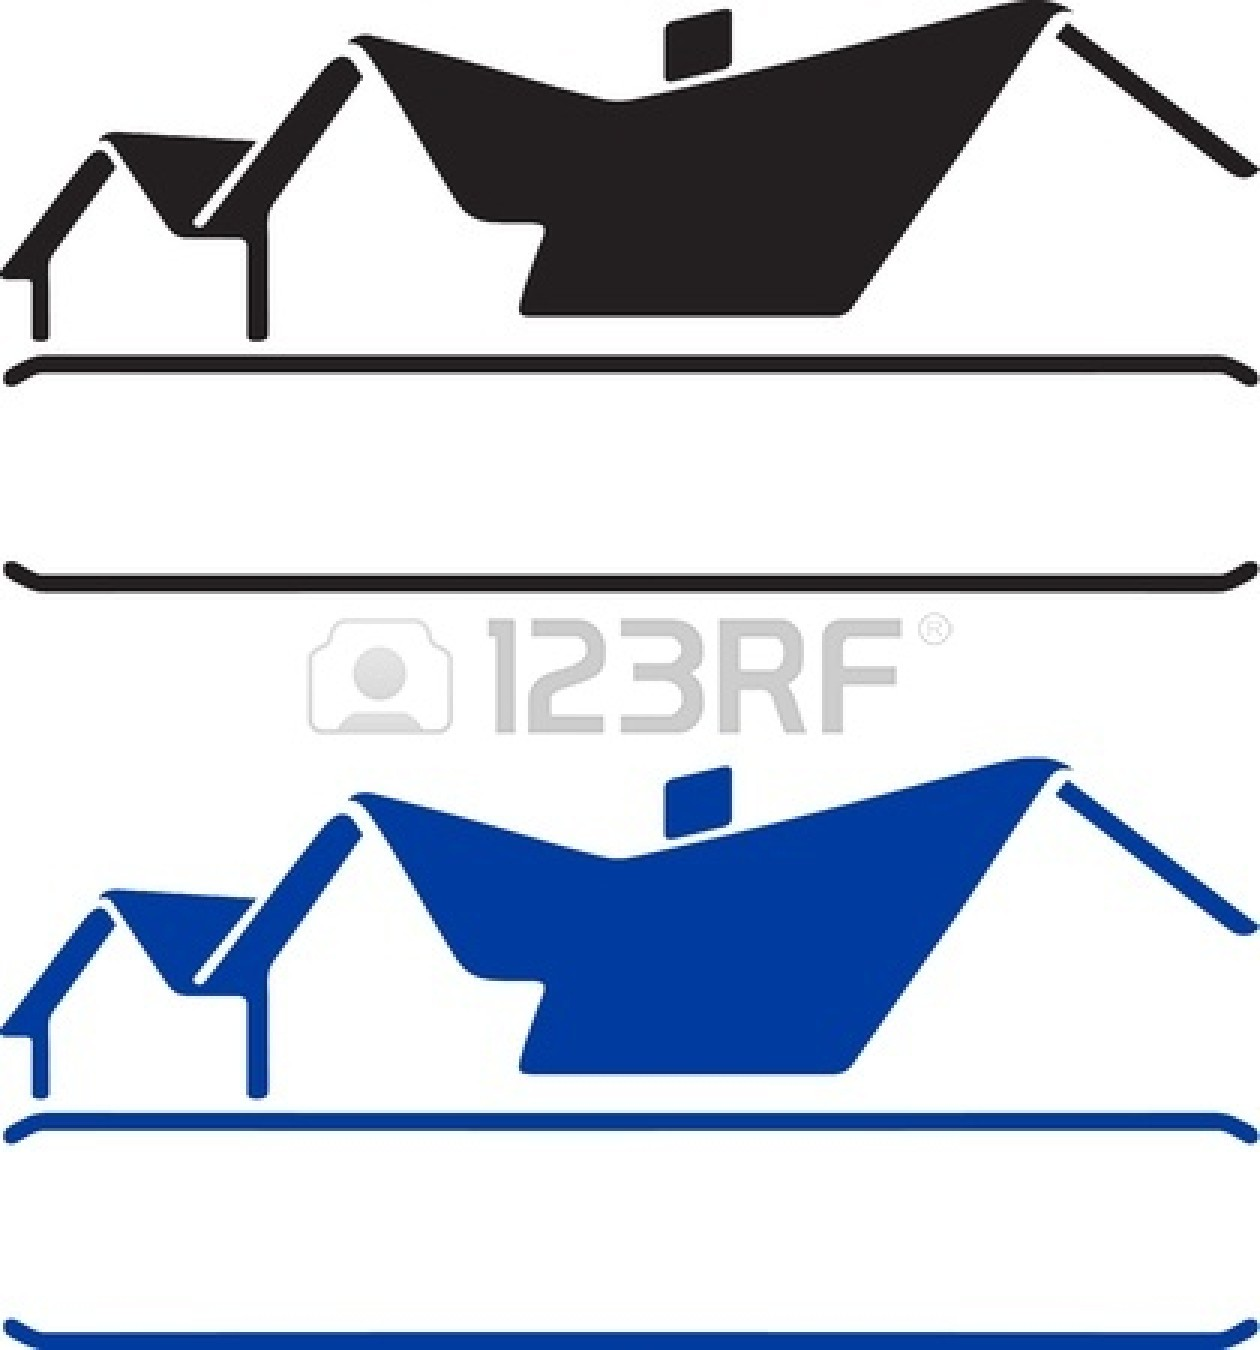 Contractor clipart roofing, Contractor roofing Transparent.